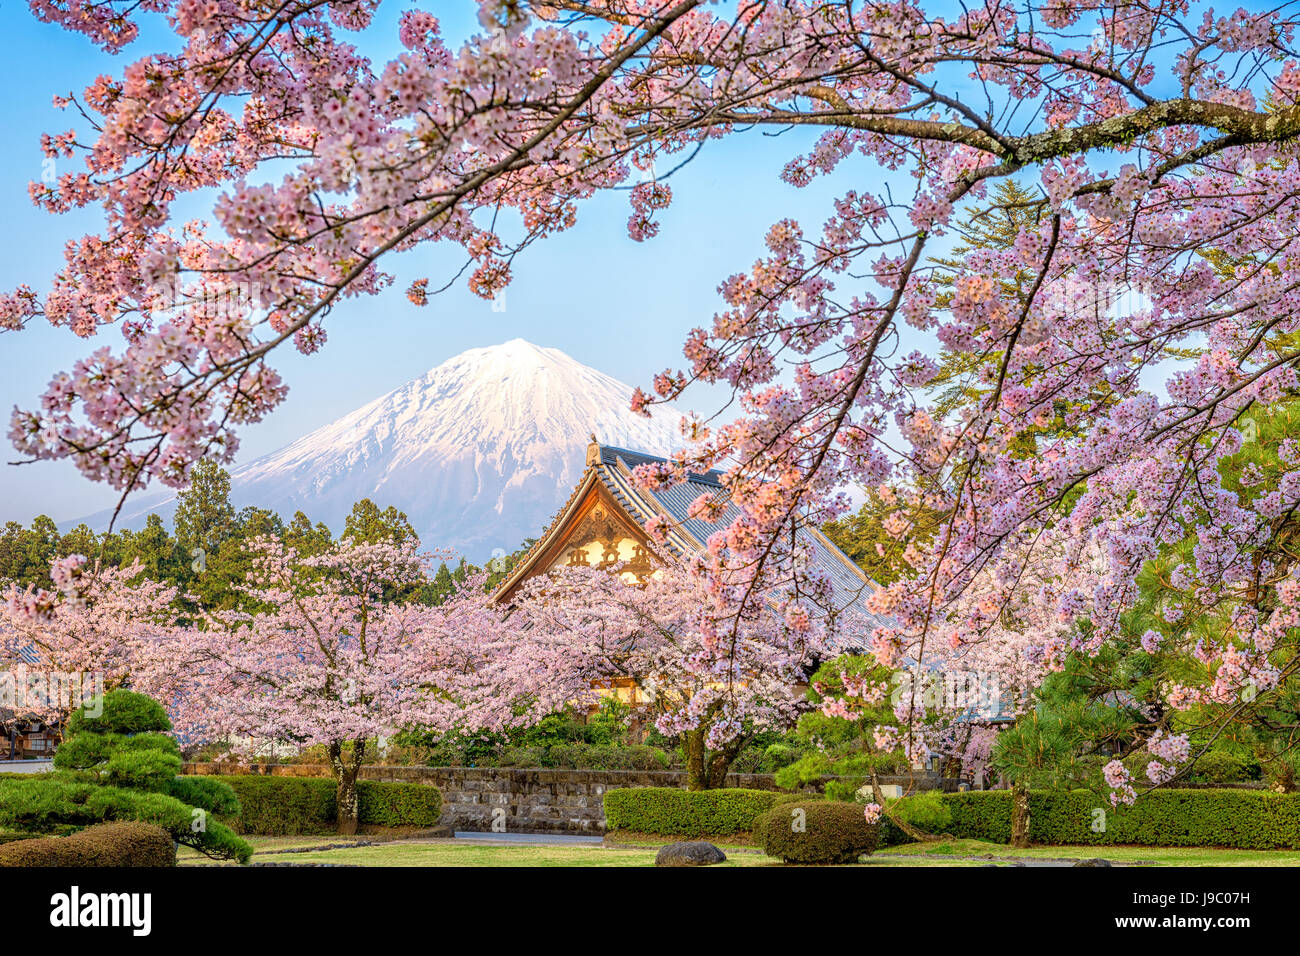 Shizuoka, Japon avec Mt. Fuji au printemps. Photo Stock